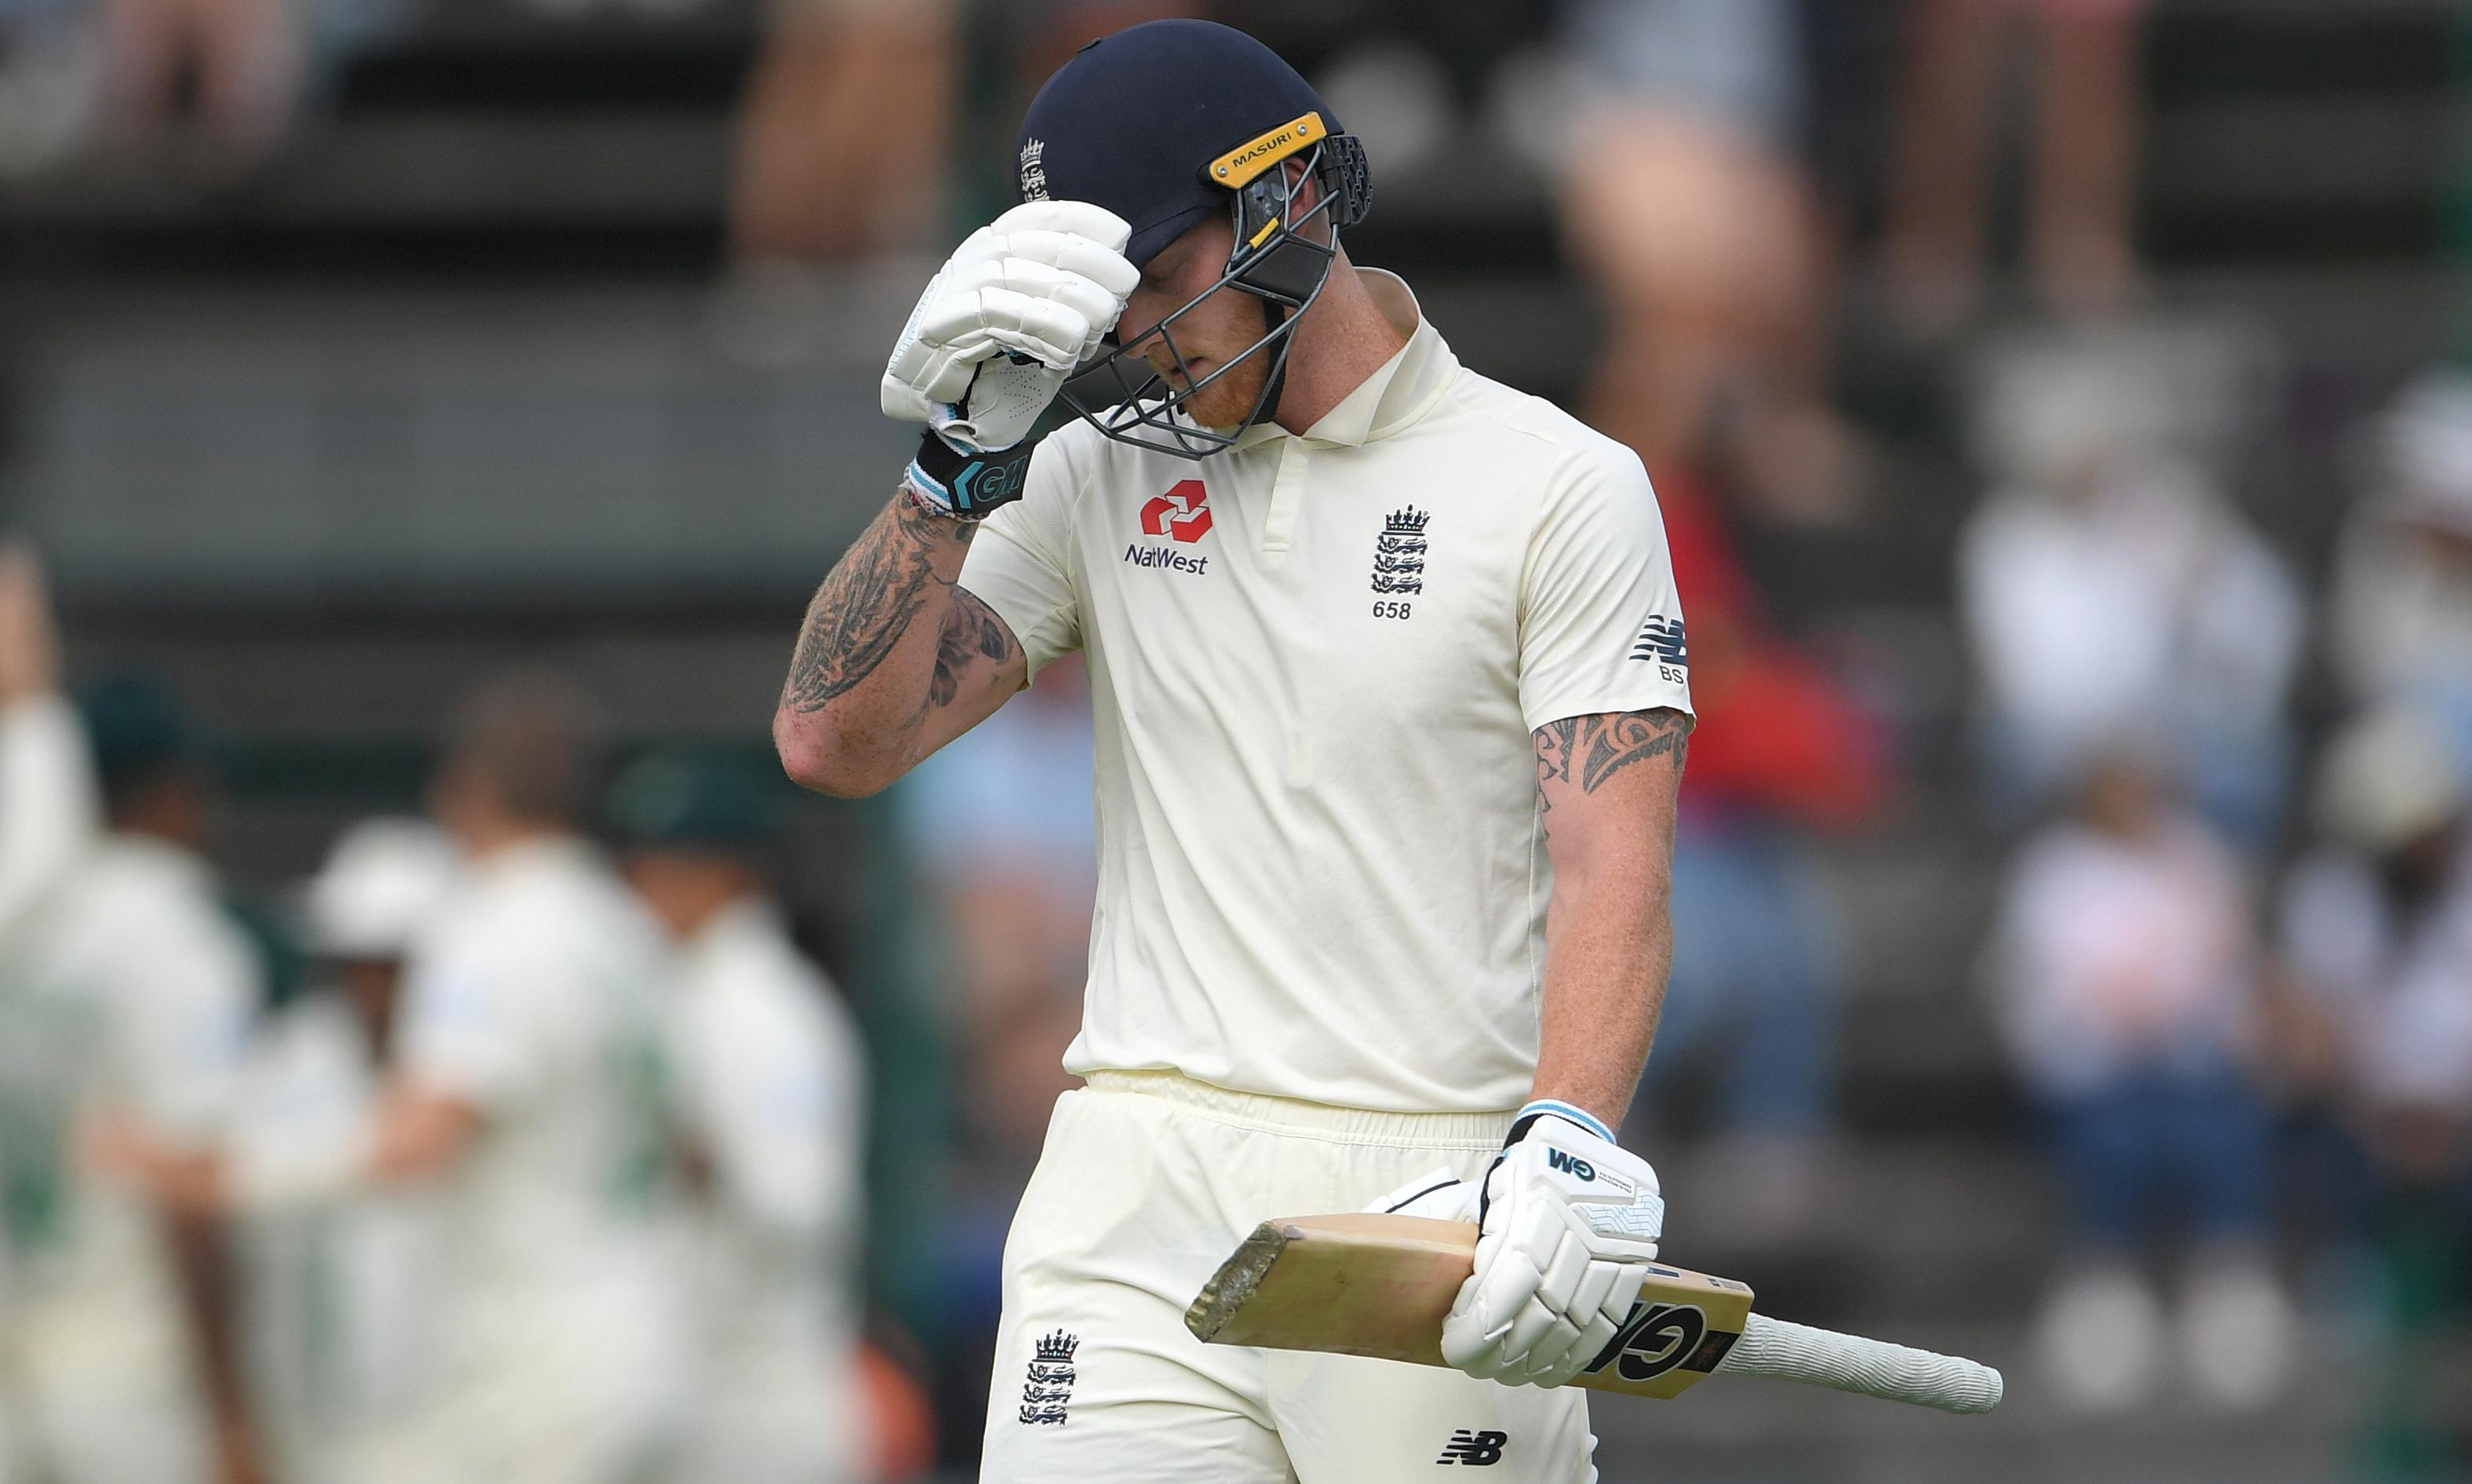 Ben Stokes apologises for foul-mouthed tirade at fan after 'Ed Sheeran' jibe